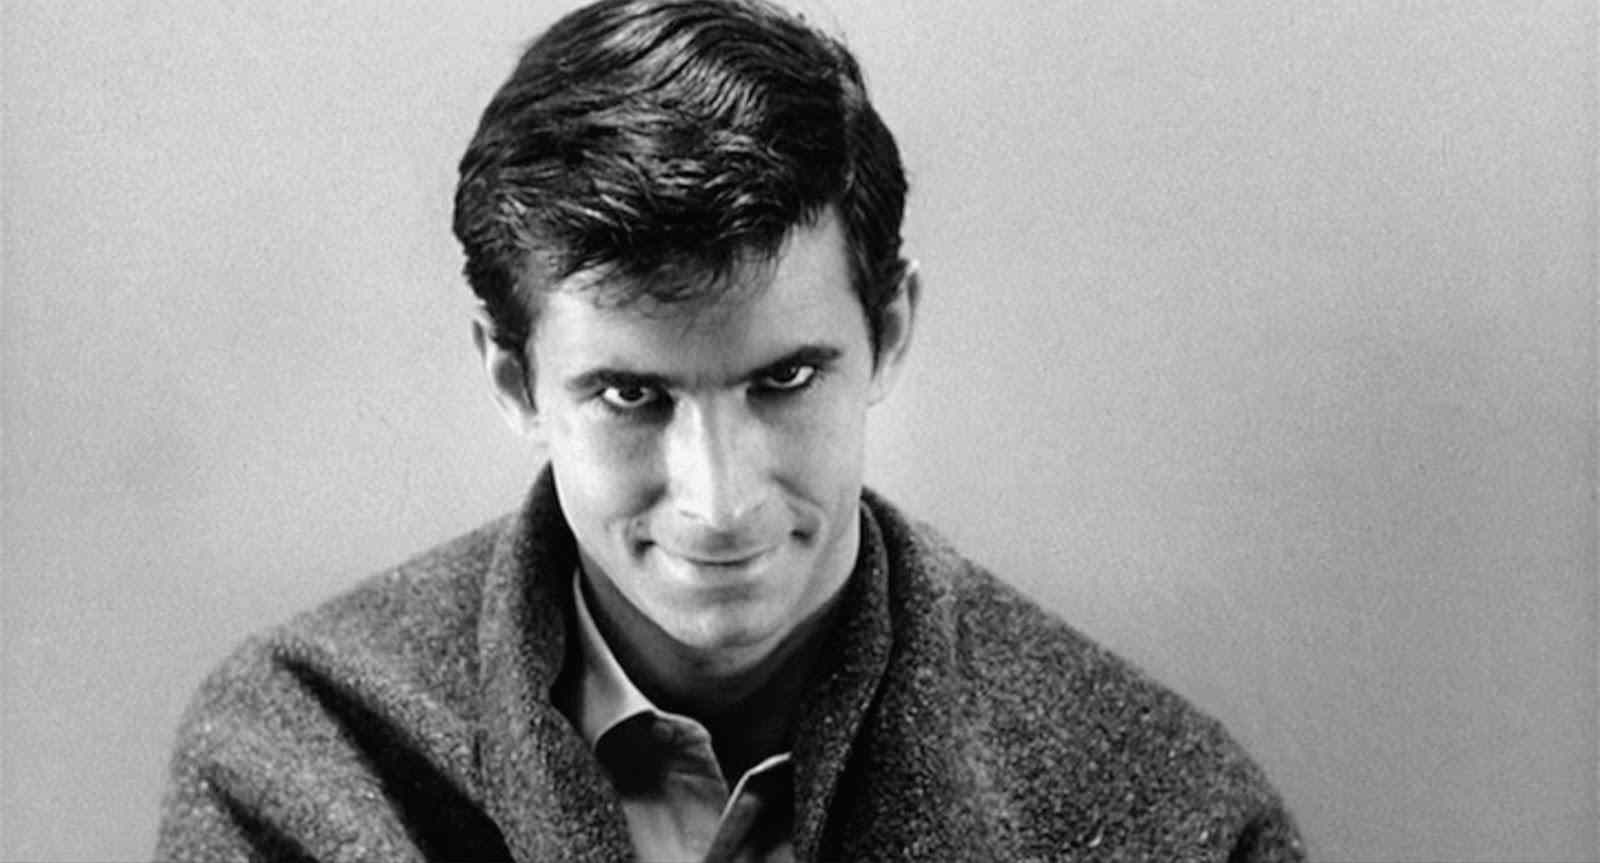 Anthony Perkins as Norman Bates in Psycho, staring at the camera.